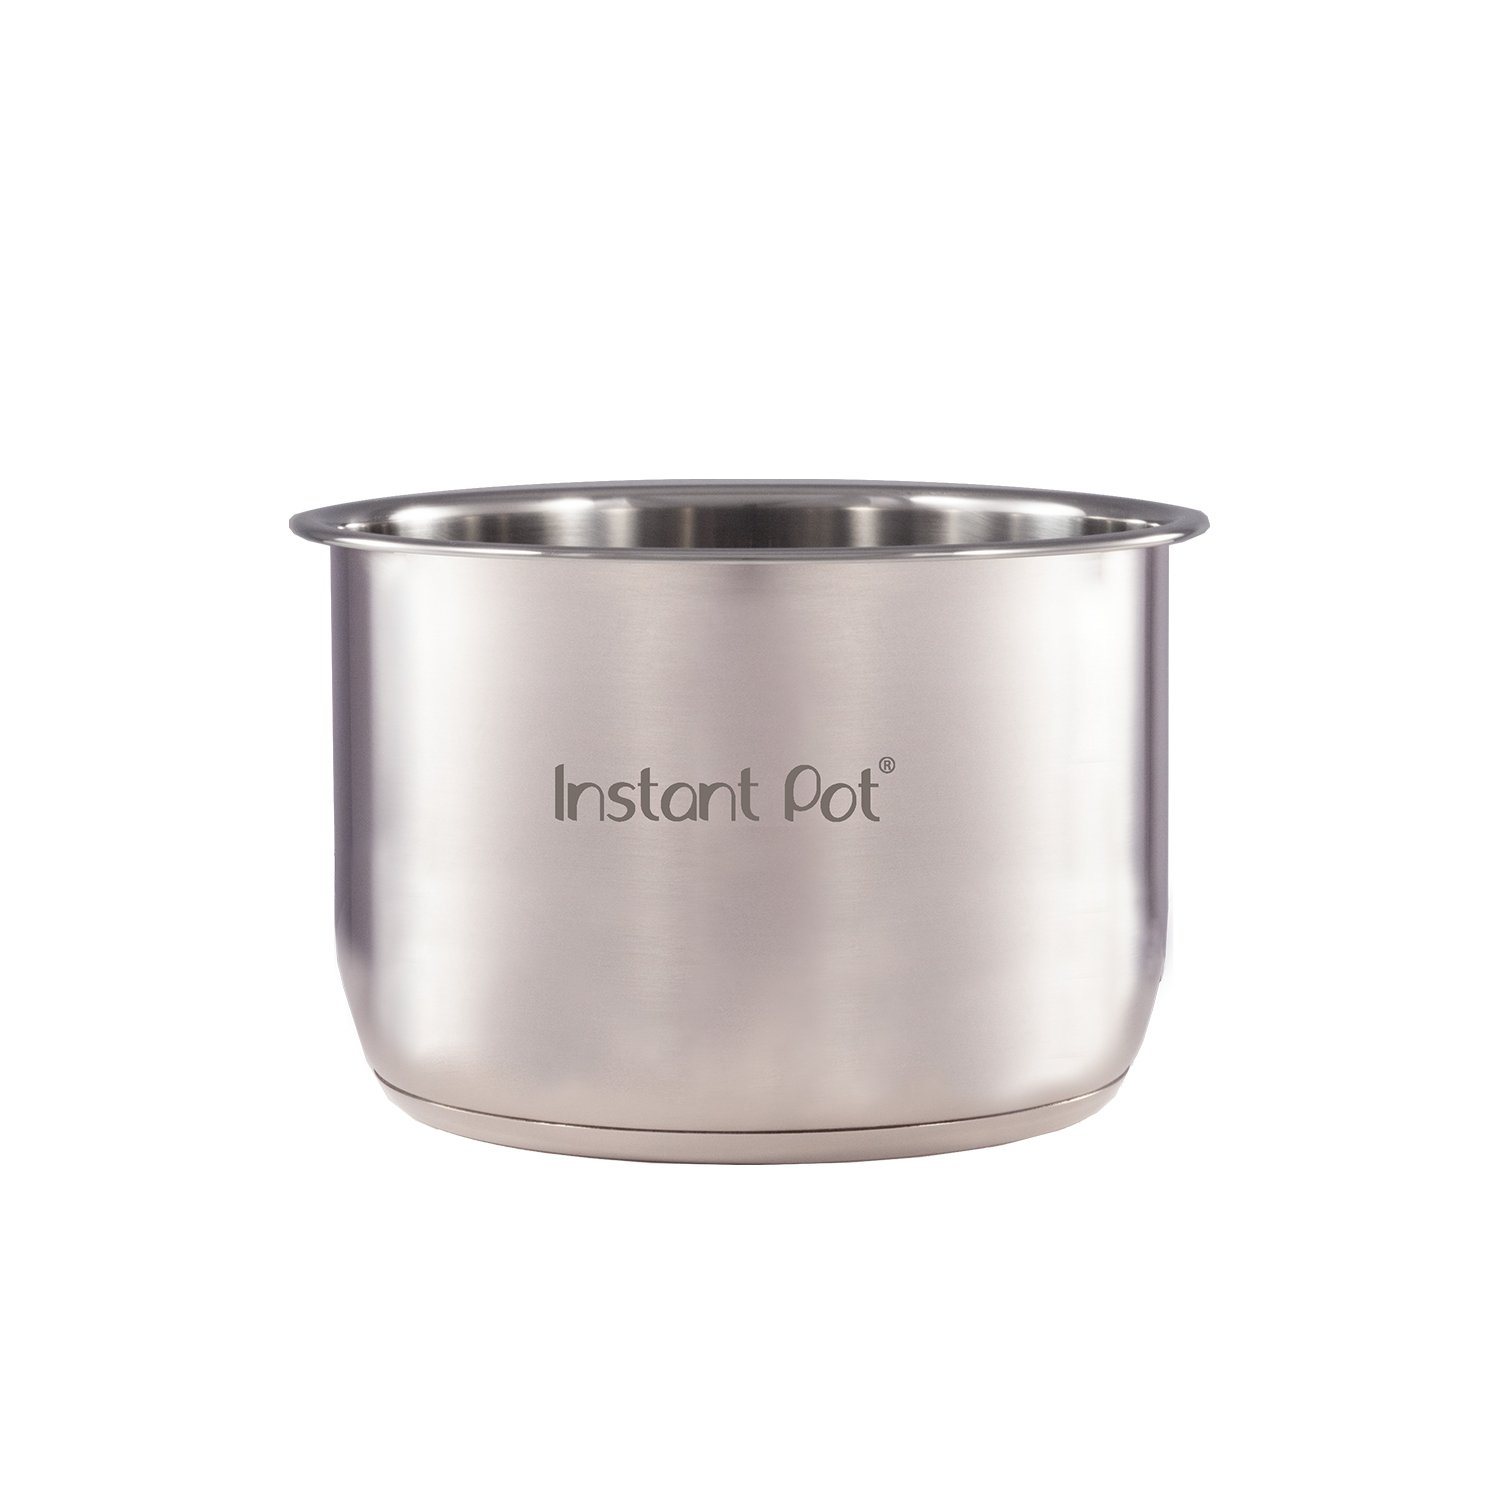 Instant Pot Stainless Steel Inner Cooking Pot - Mini 3 Quart POT-3-STAINLESS-STEEL